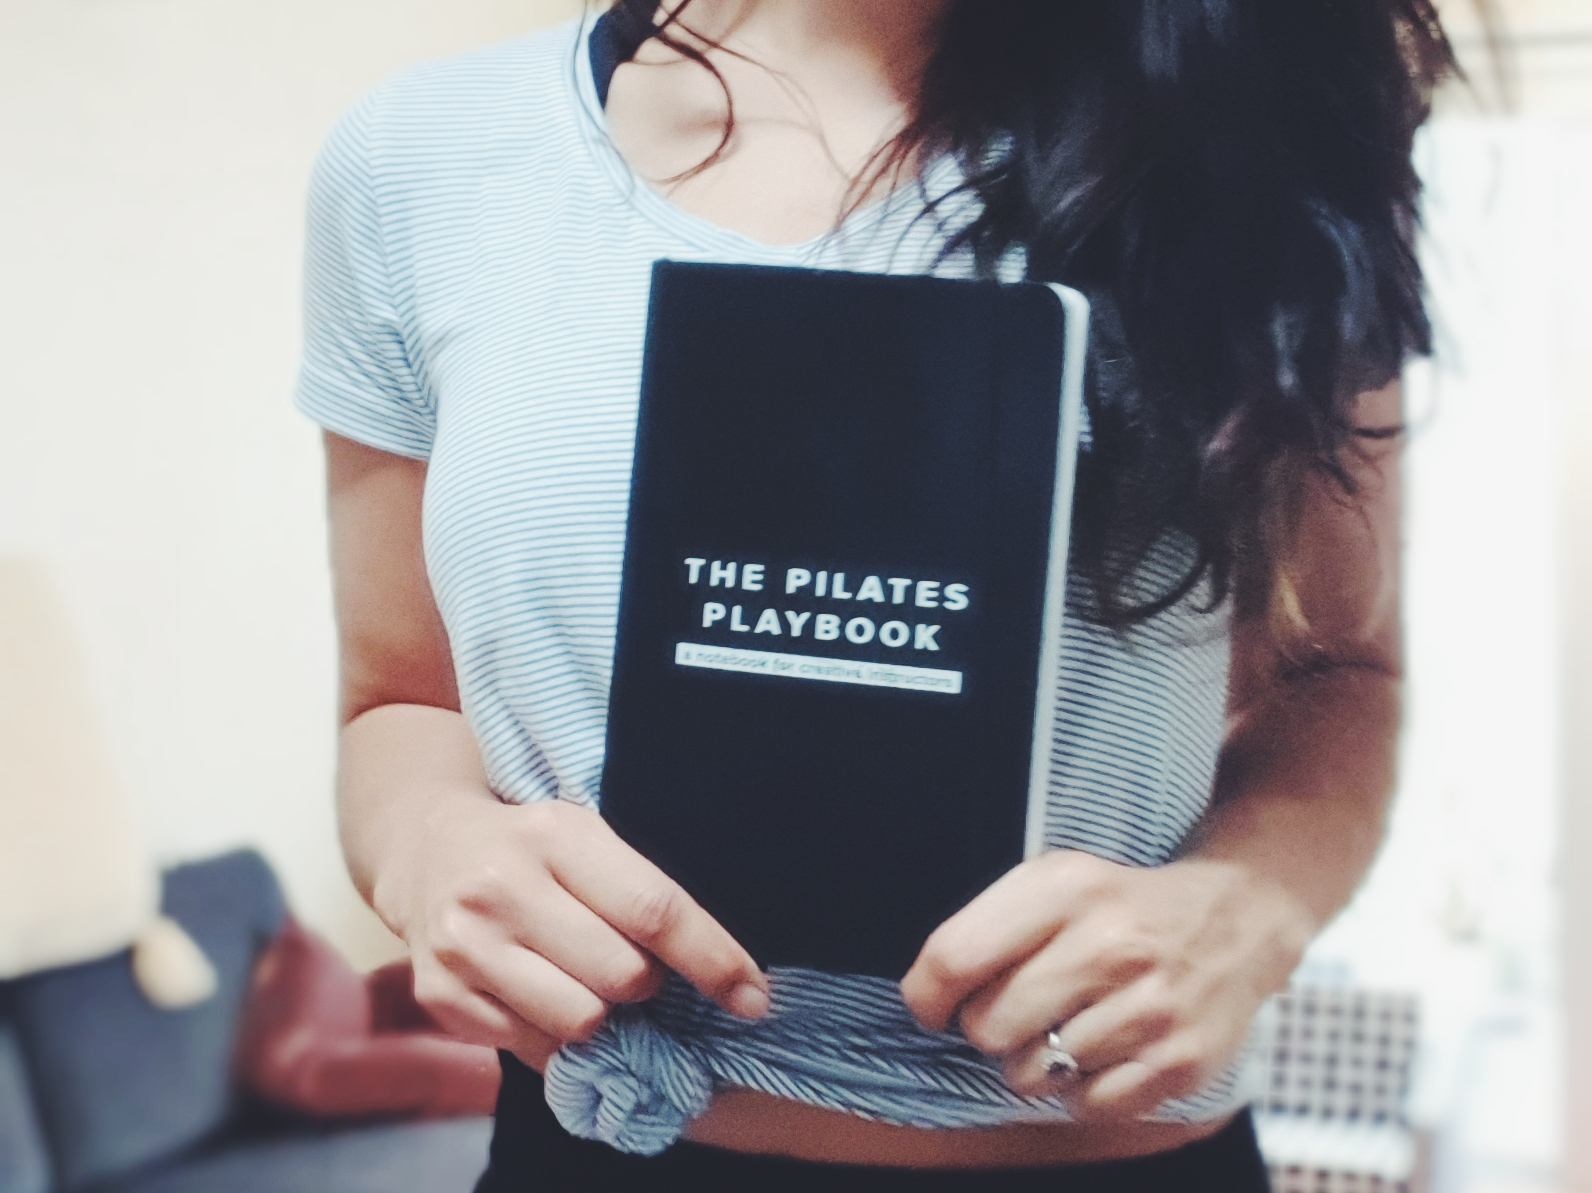 The Pilates Playbook - A class planning tool for Instructors to keep all your observation notes, workshop learnings, class plans and inspiration in the one place! It also has a self reflection guide at the back to help you figure out your teaching values and philosophy! Click here to purchase!